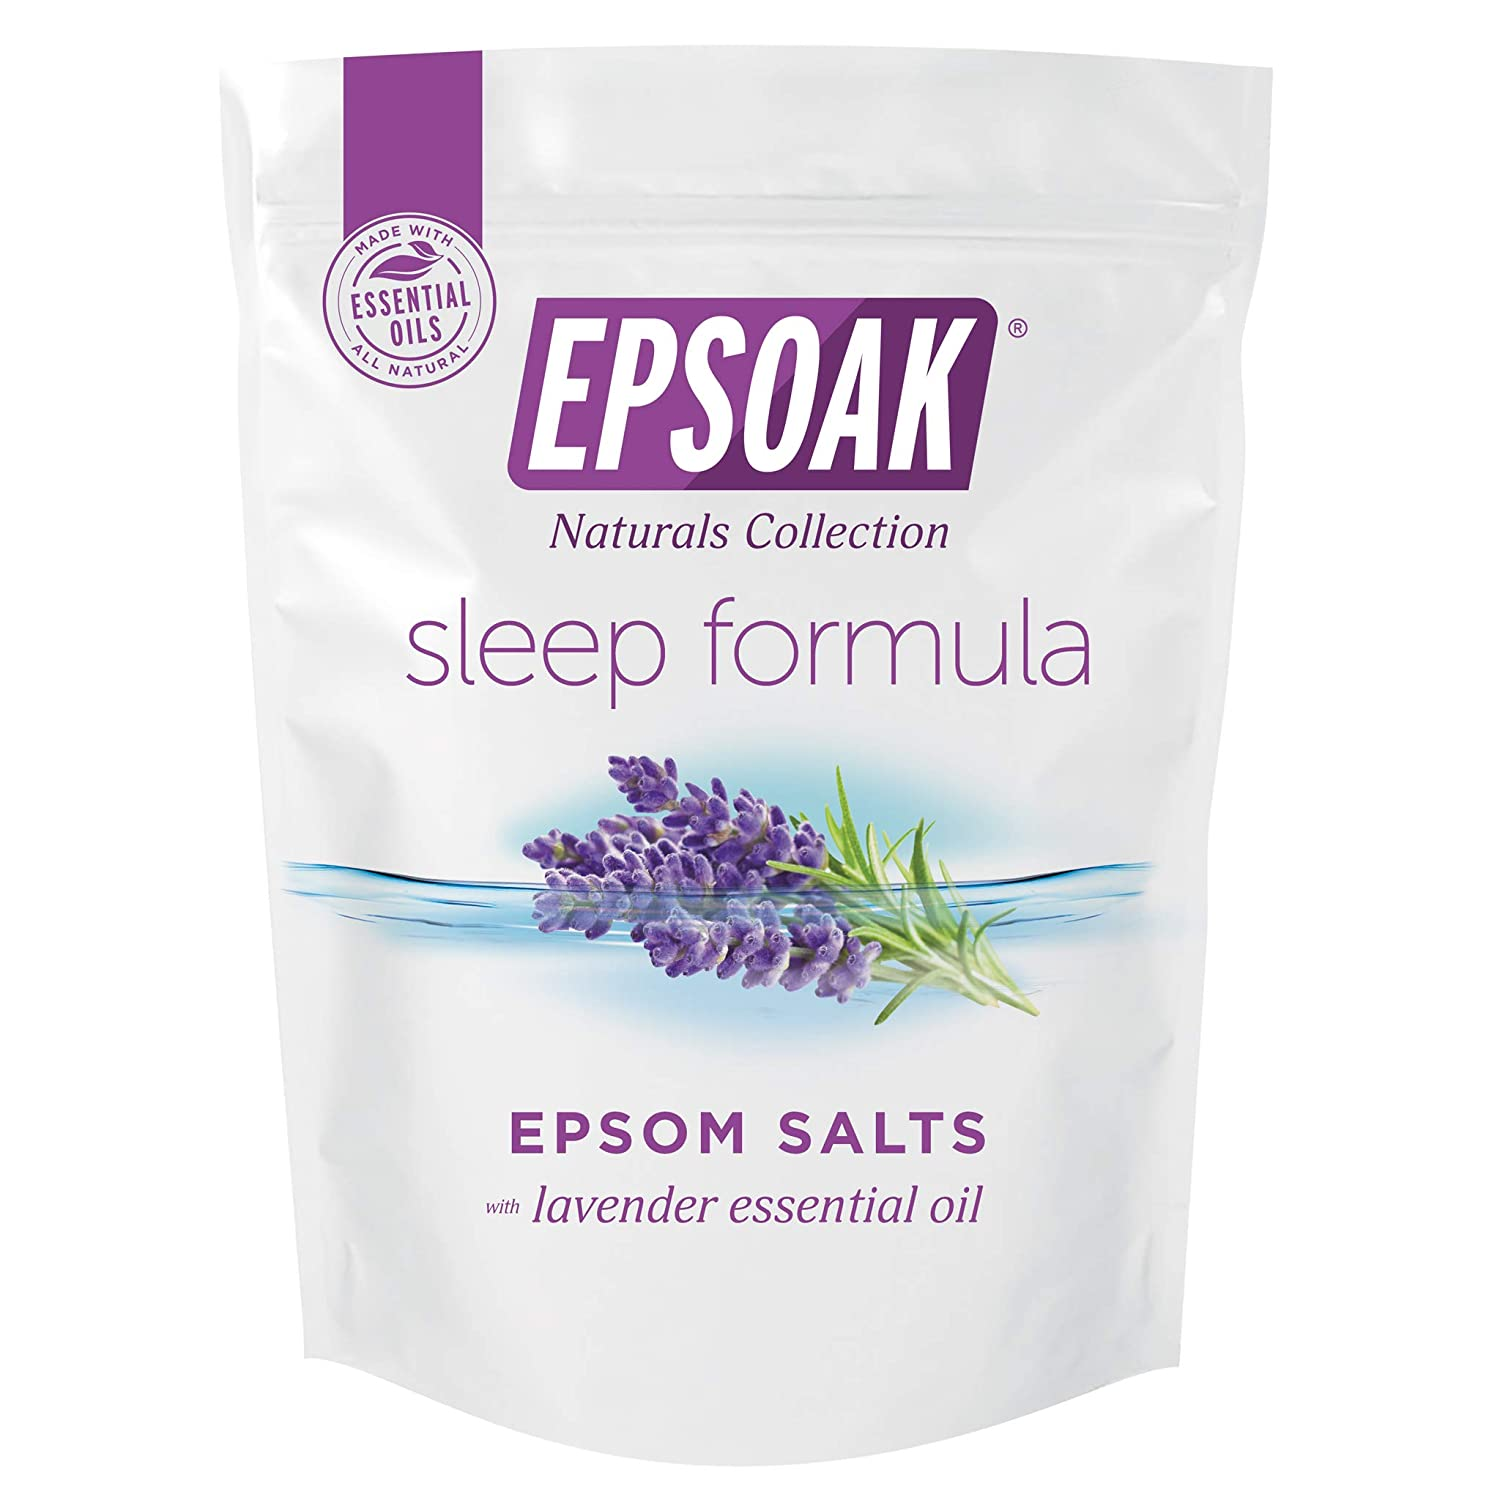 Epsoak Sleep Formula 5 lb. Bulk Bag Epsom Salt - San Francisco Salt Company